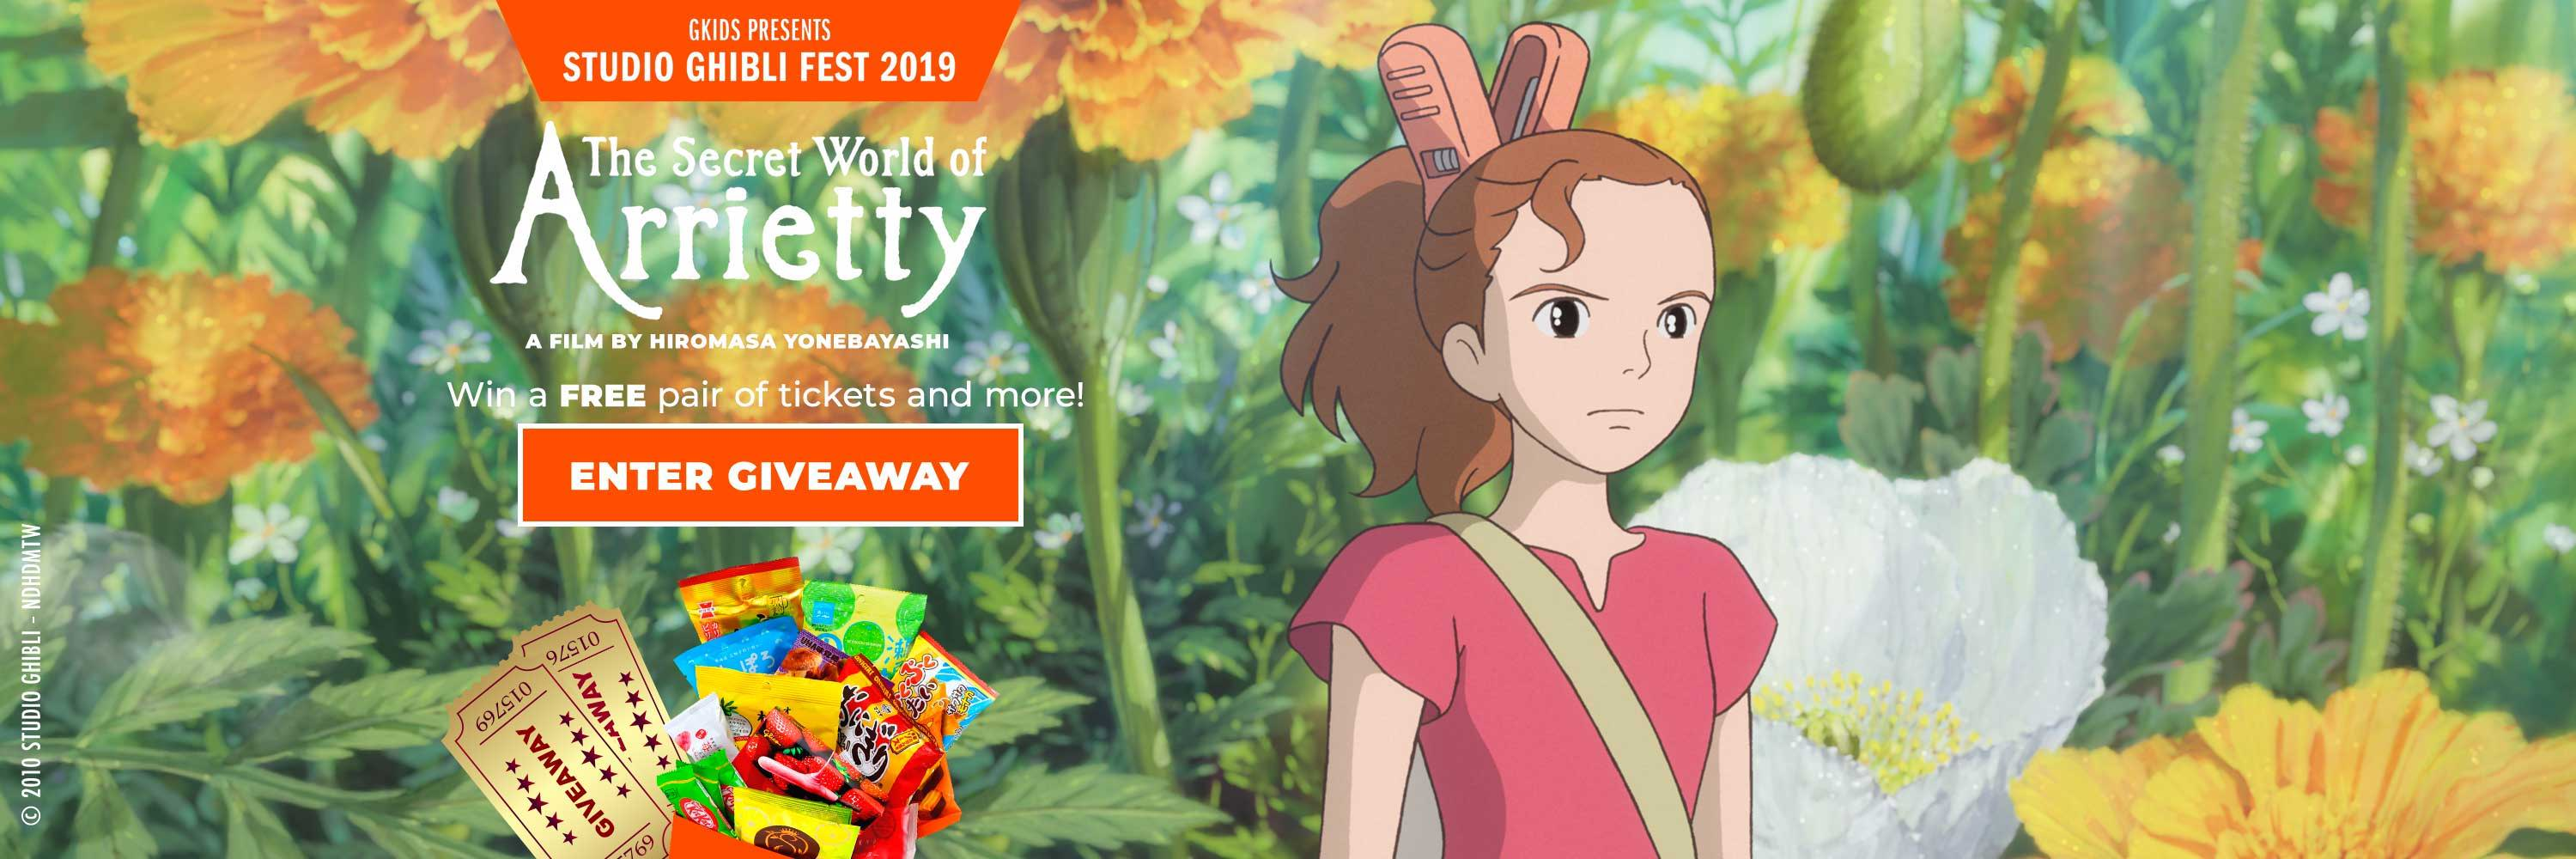 Studio Ghibli giveaway for Arietty